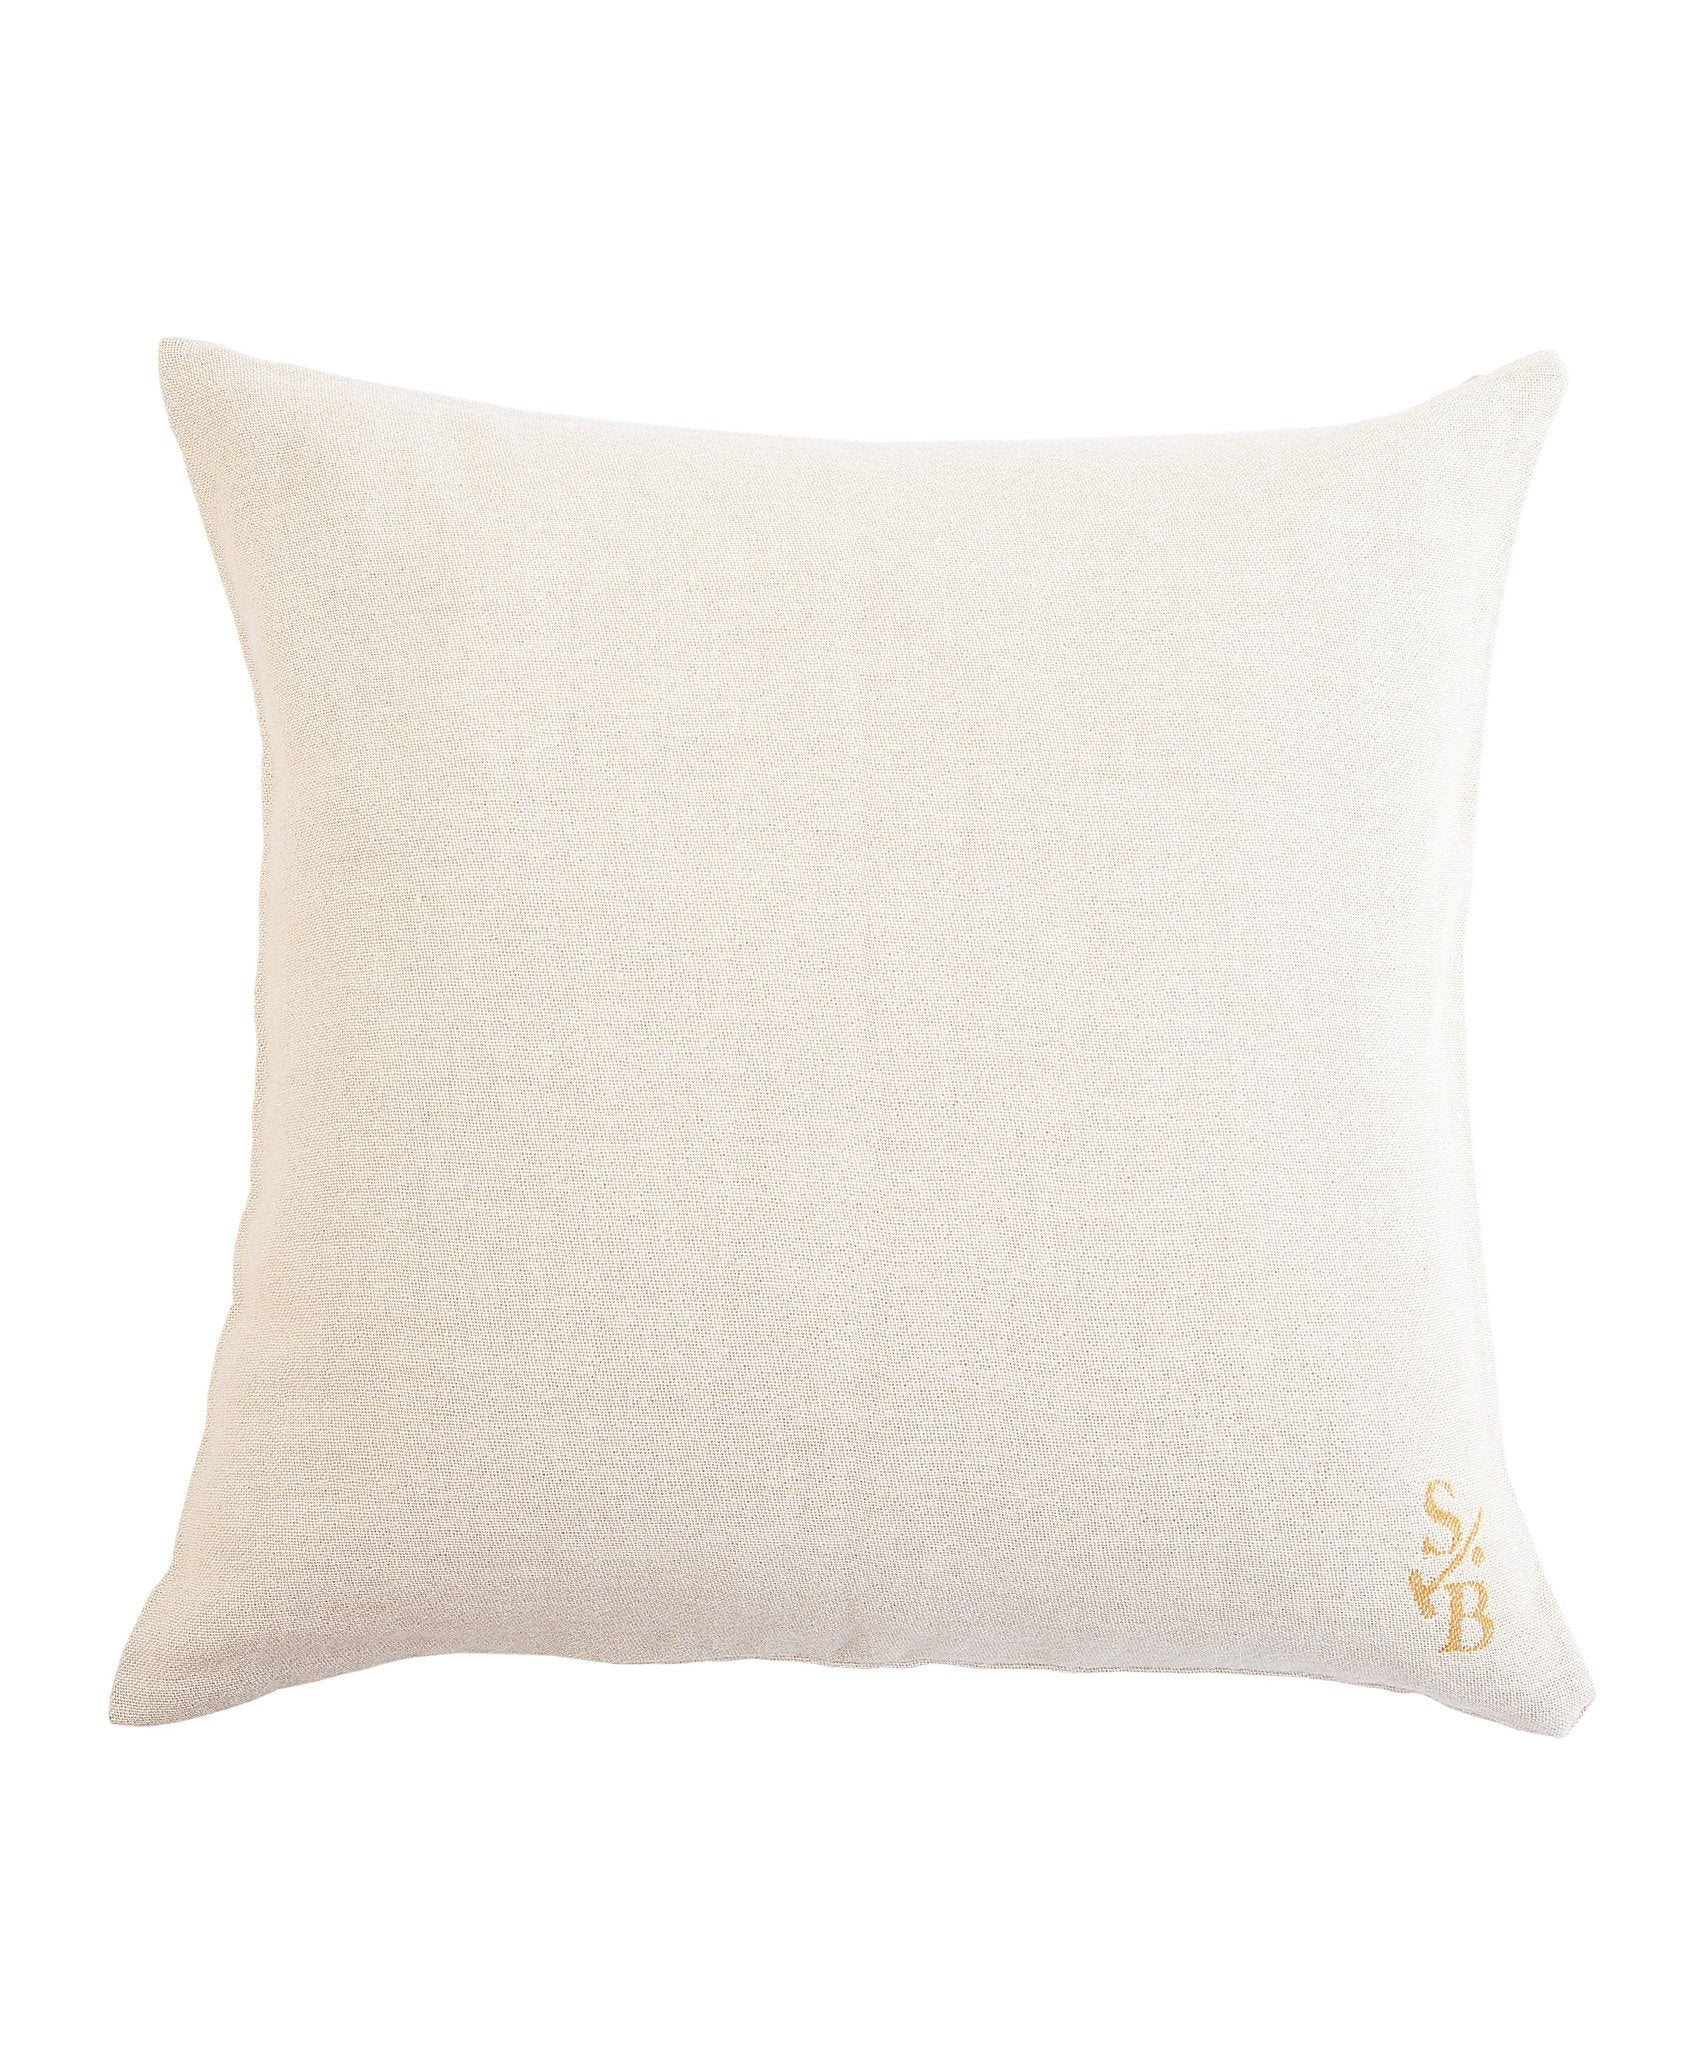 Polo Pony Pillow Back